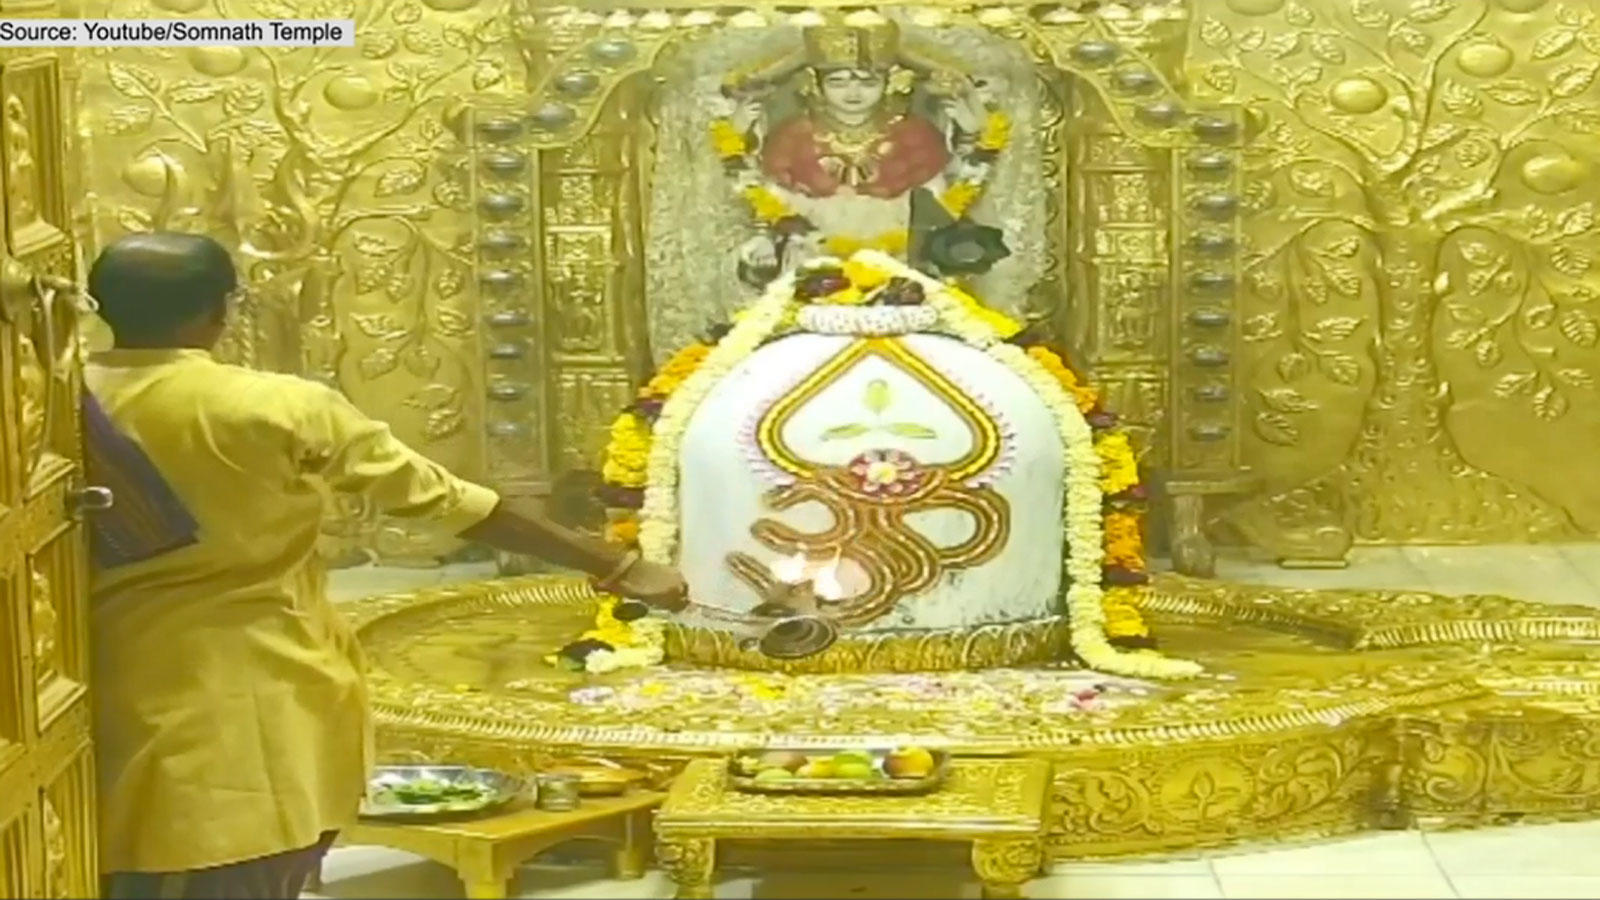 watch-morning-aarti-at-shree-somnath-temple